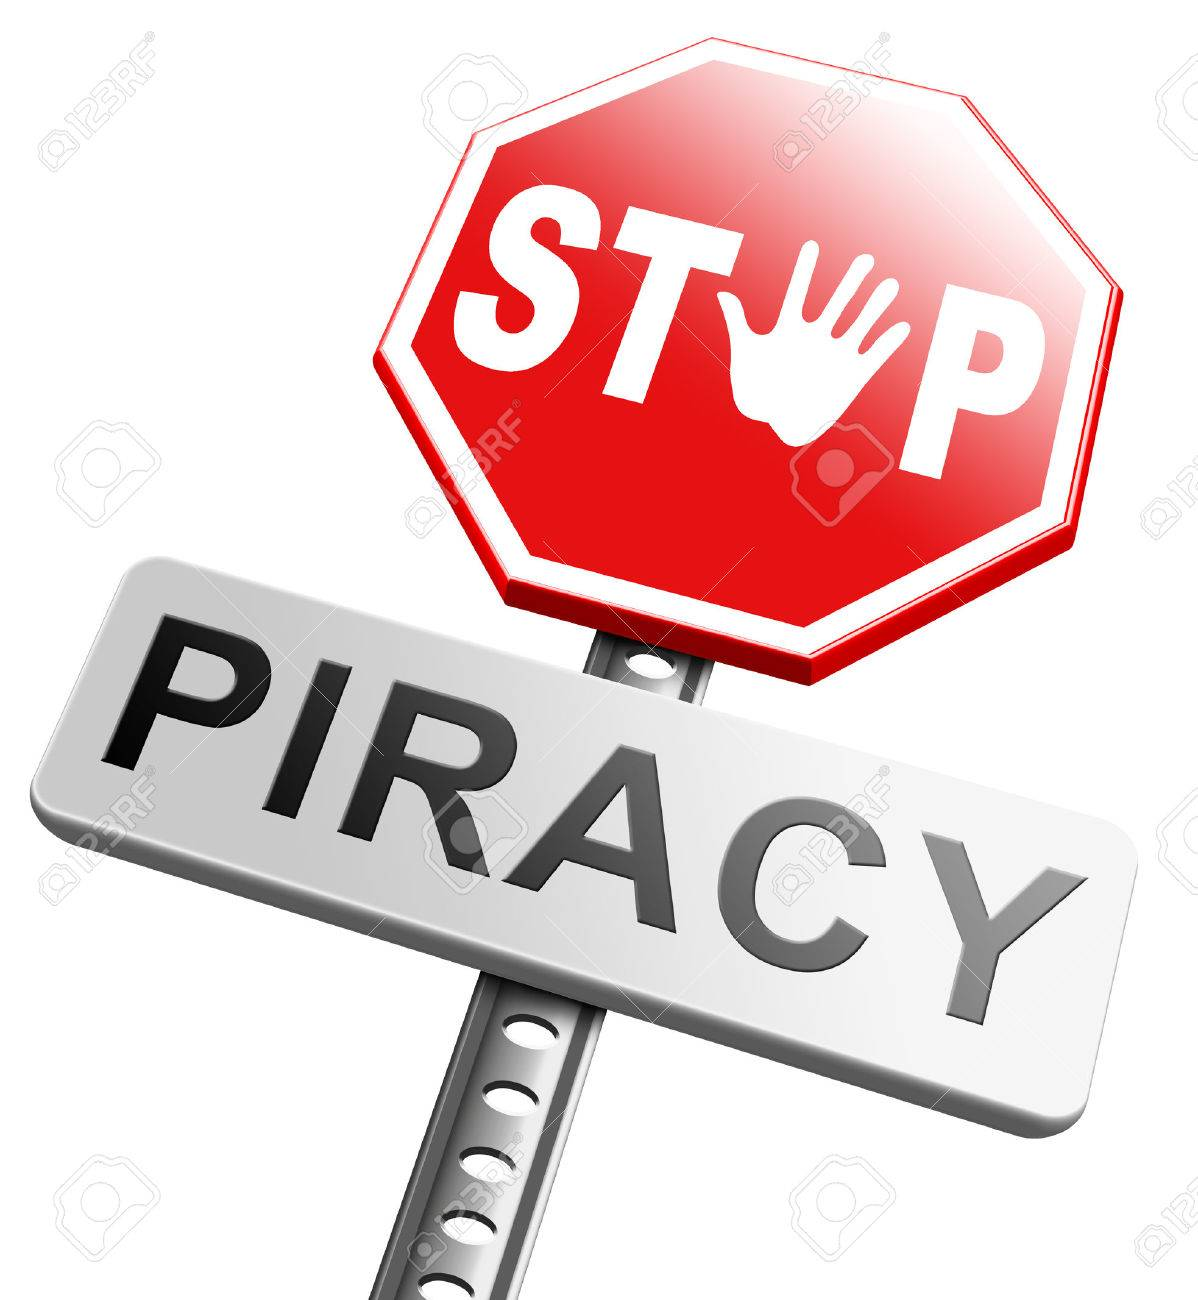 piracy stop illegal download of movies and music and illegal